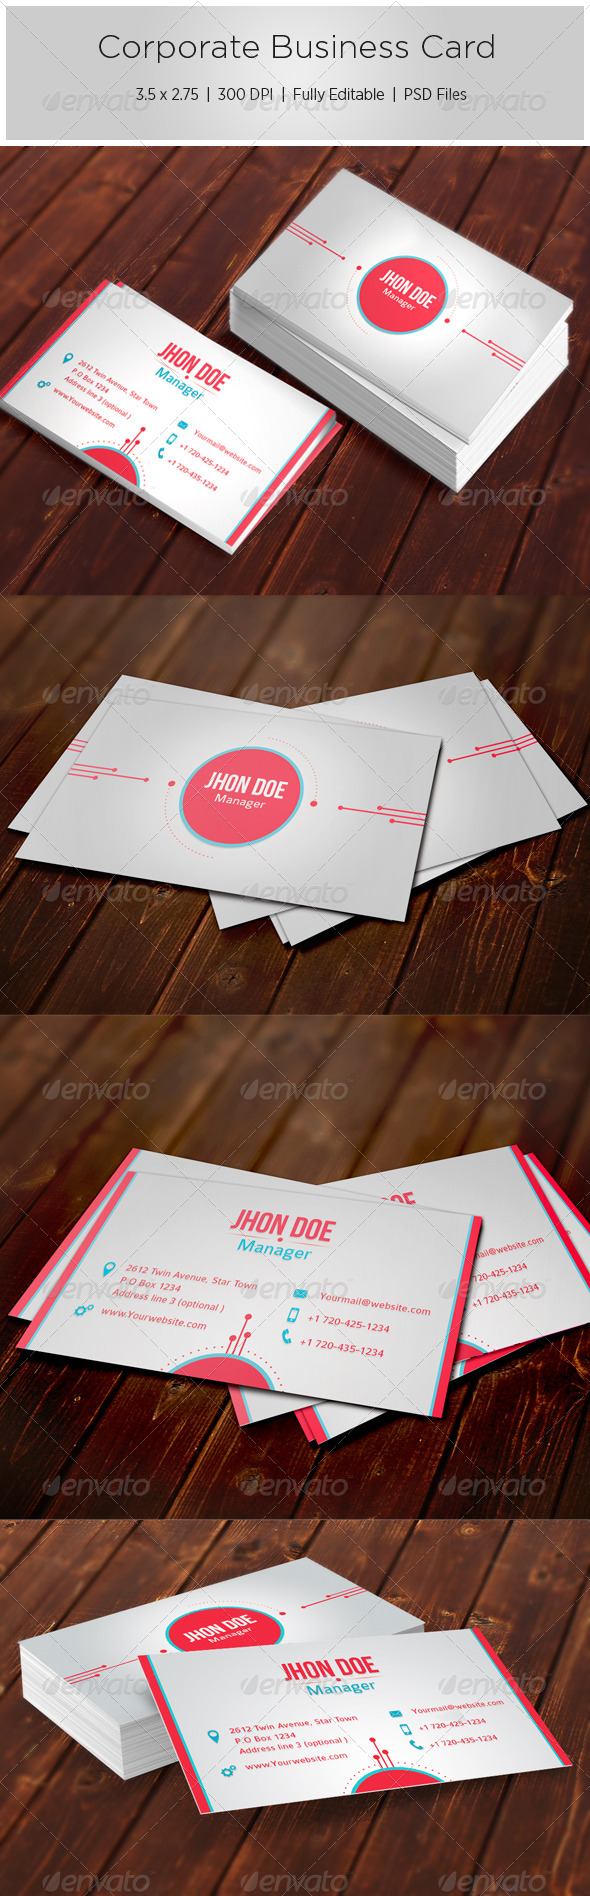 GraphicRiver Corporate Business Card 5468115